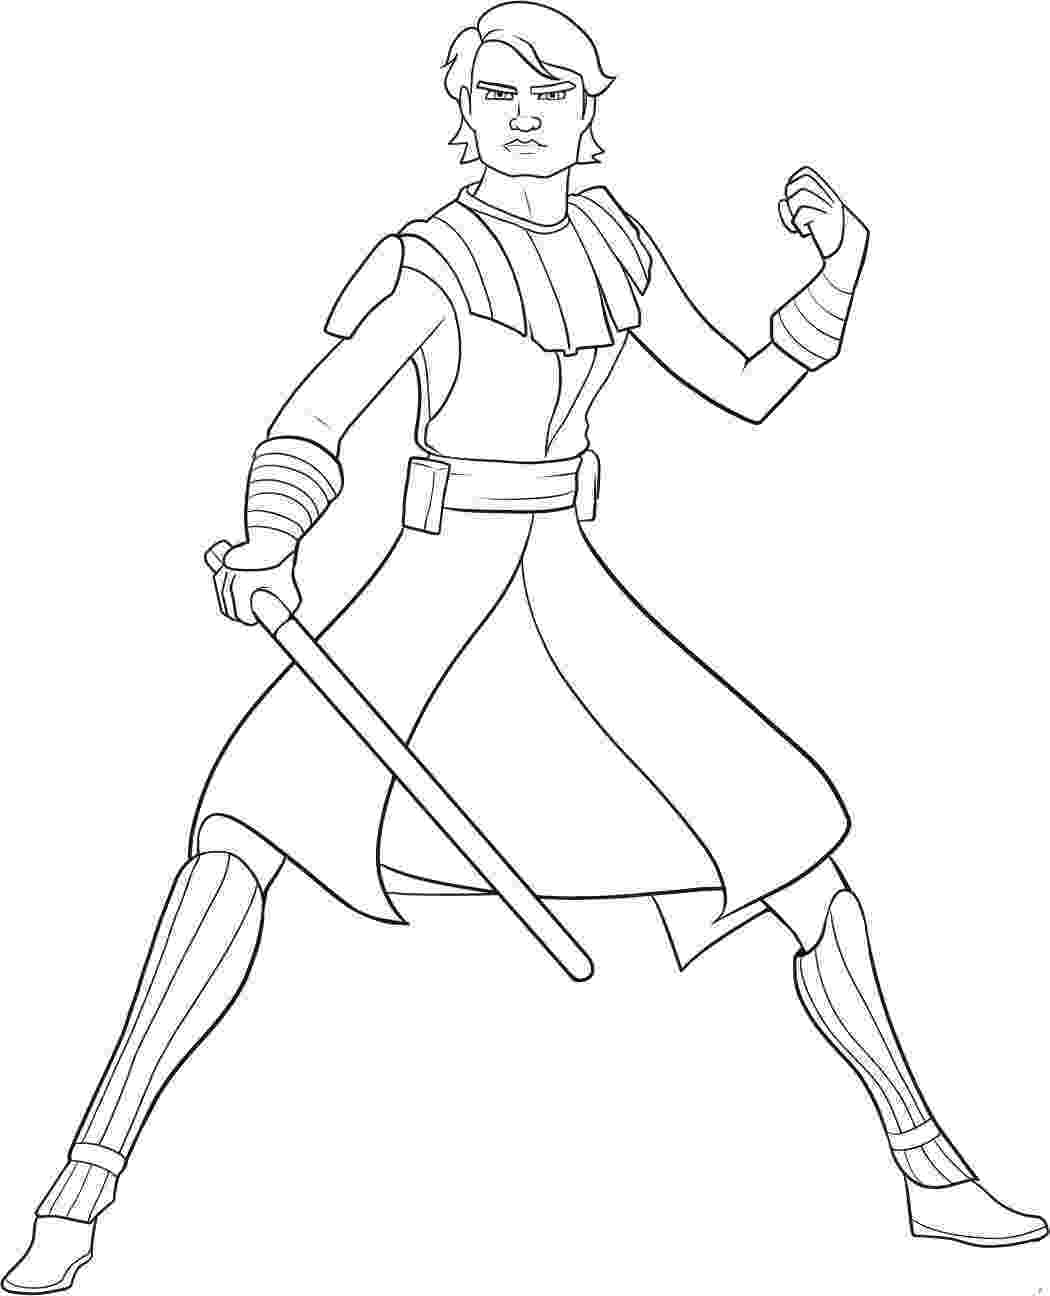 star wars colouring printables 8 free star wars the force awakens coloring sheets wars colouring star printables